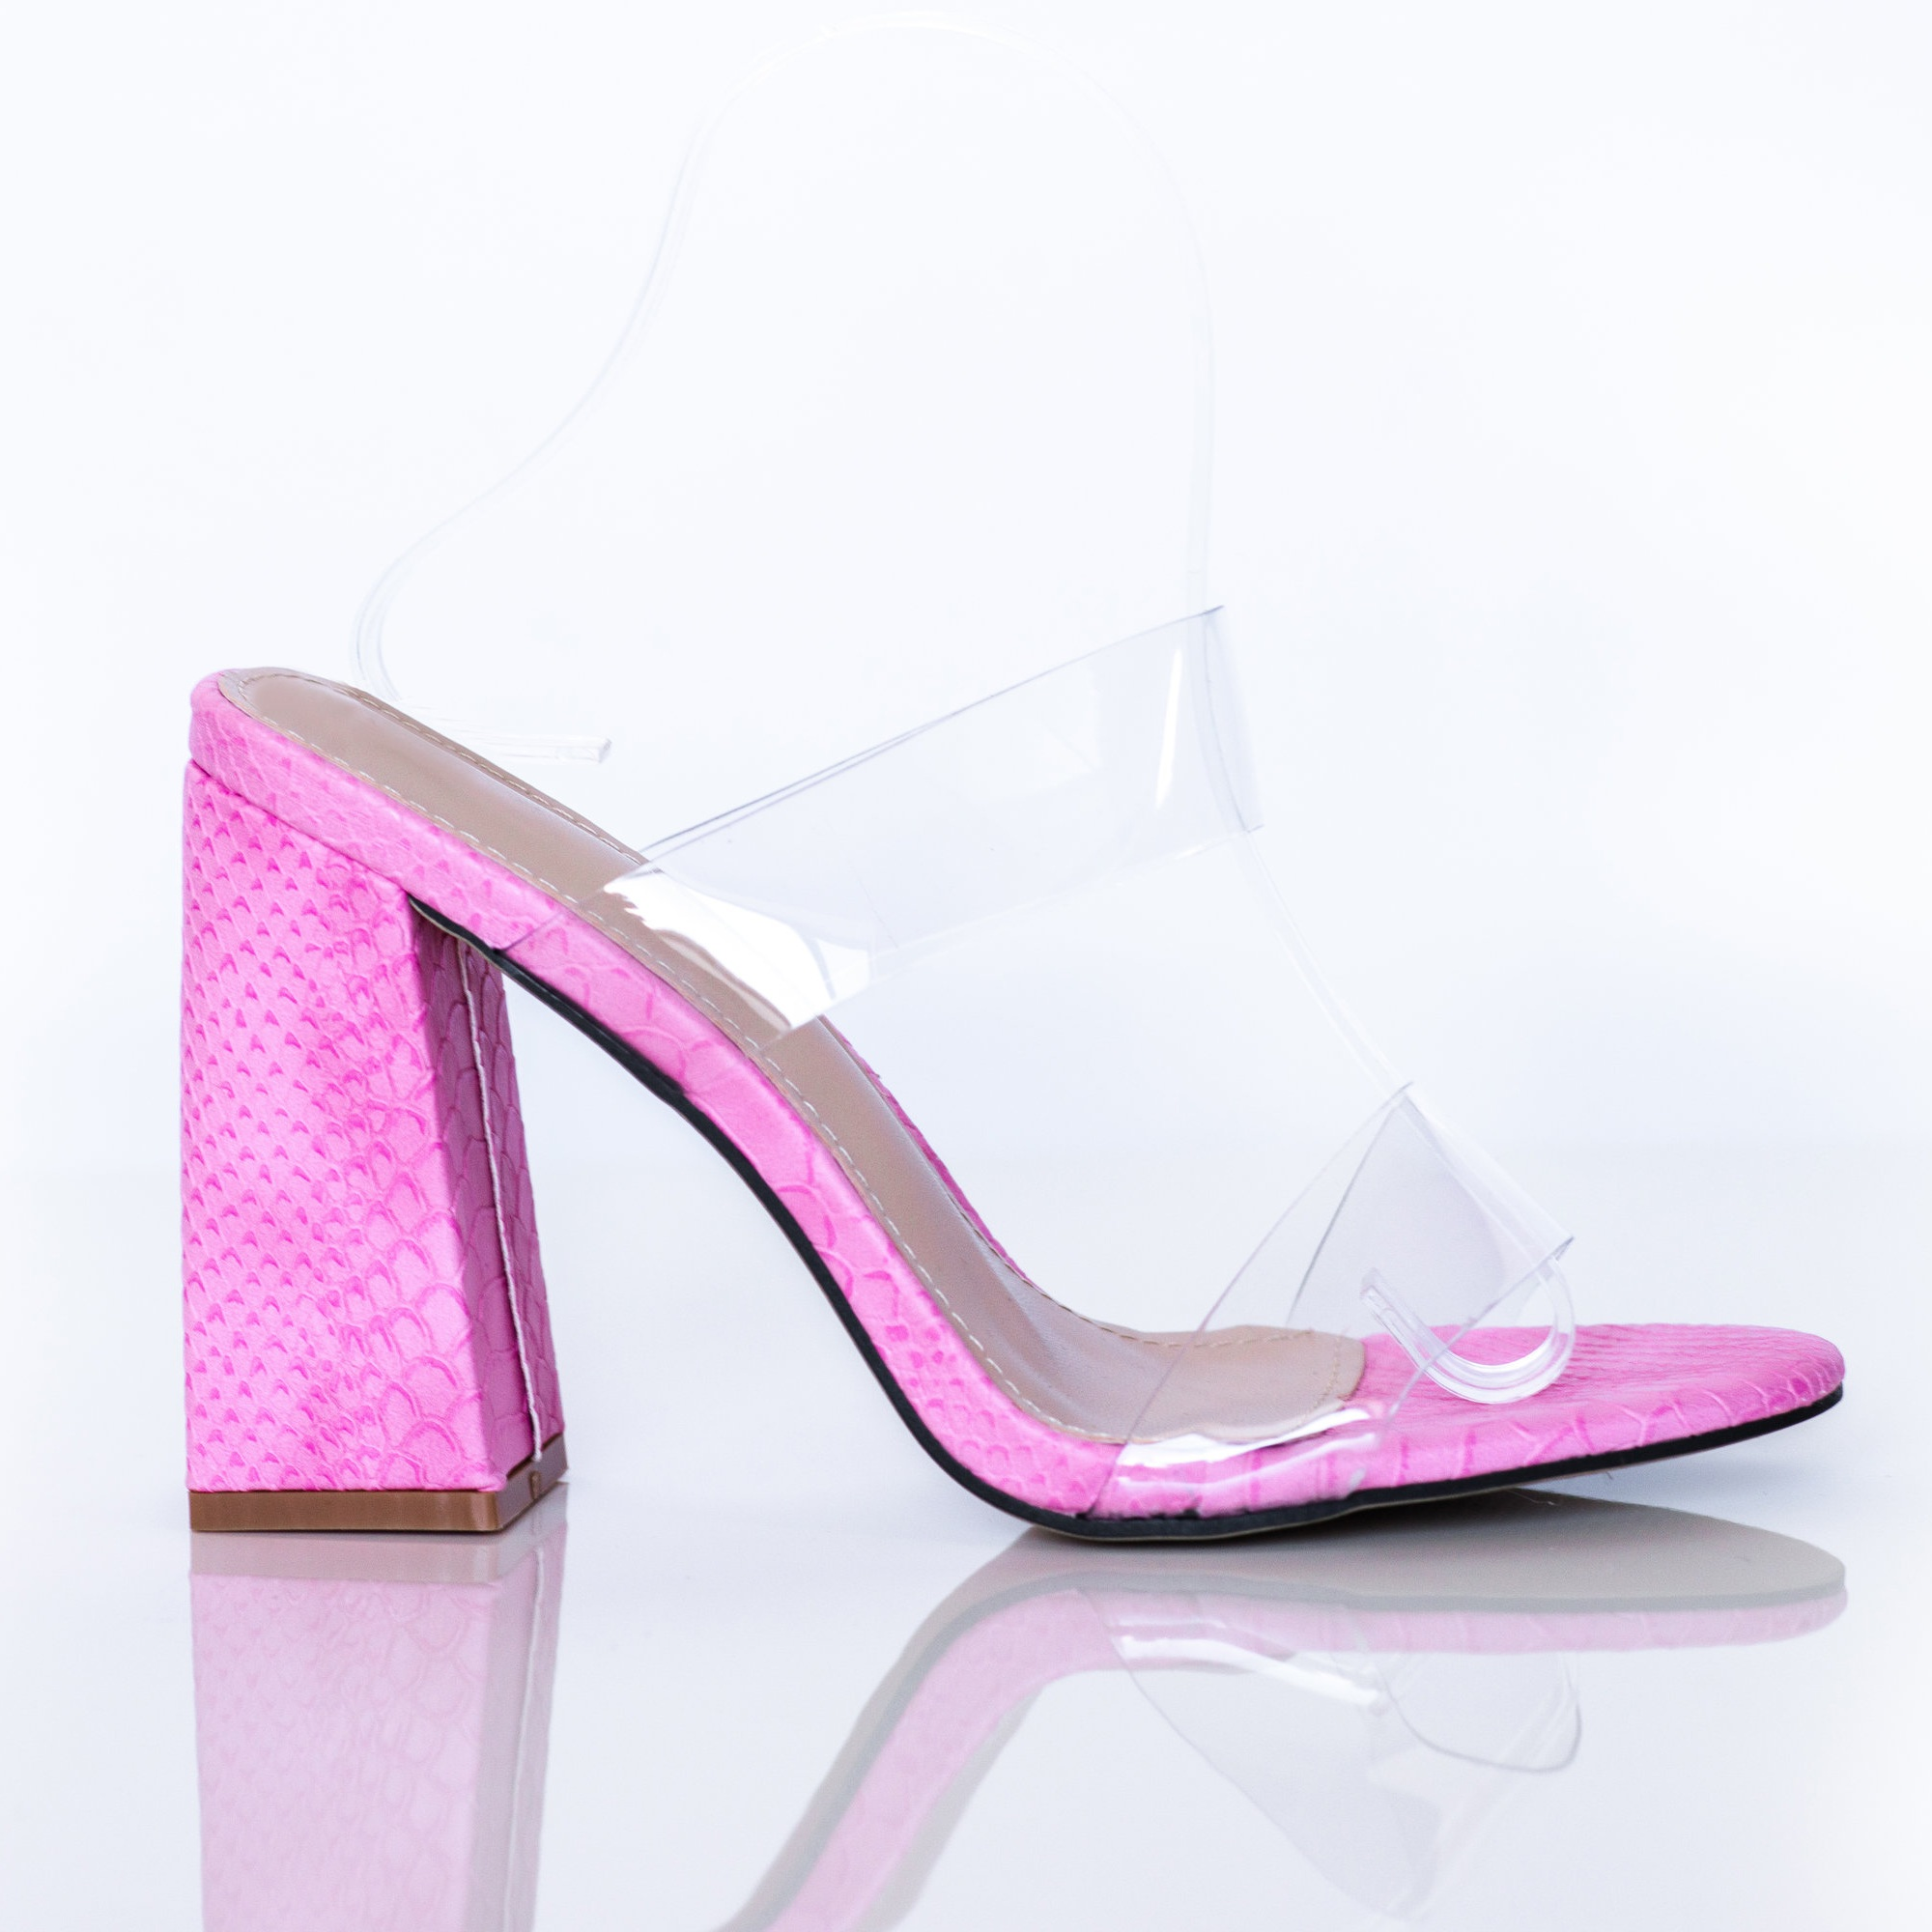 """FETCH - The Ultimate Mean Girl Mule…An Ode to ReginaShop our latest summer addition, FETCH! This pink textured mule is the perfect way to say """"you can't sit with us…or me"""". A block heel for comfort and perspex straps for styling flexibility. You can never go wrong with a little pop of pink.GET IN LOSER WE'RE GOING SHOPPING!"""